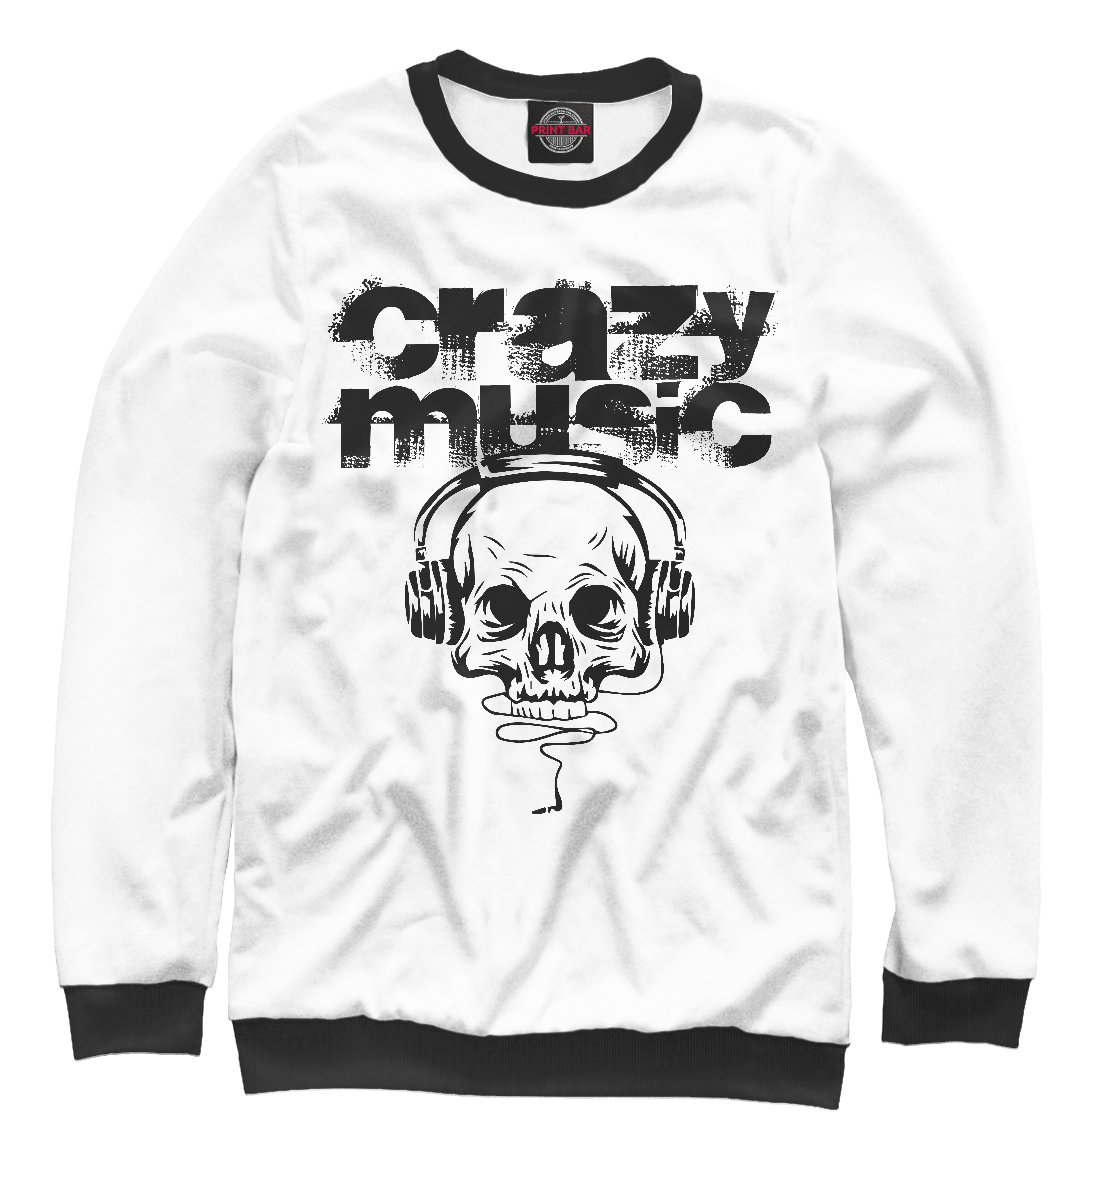 Crazy music mikael niemi popular music